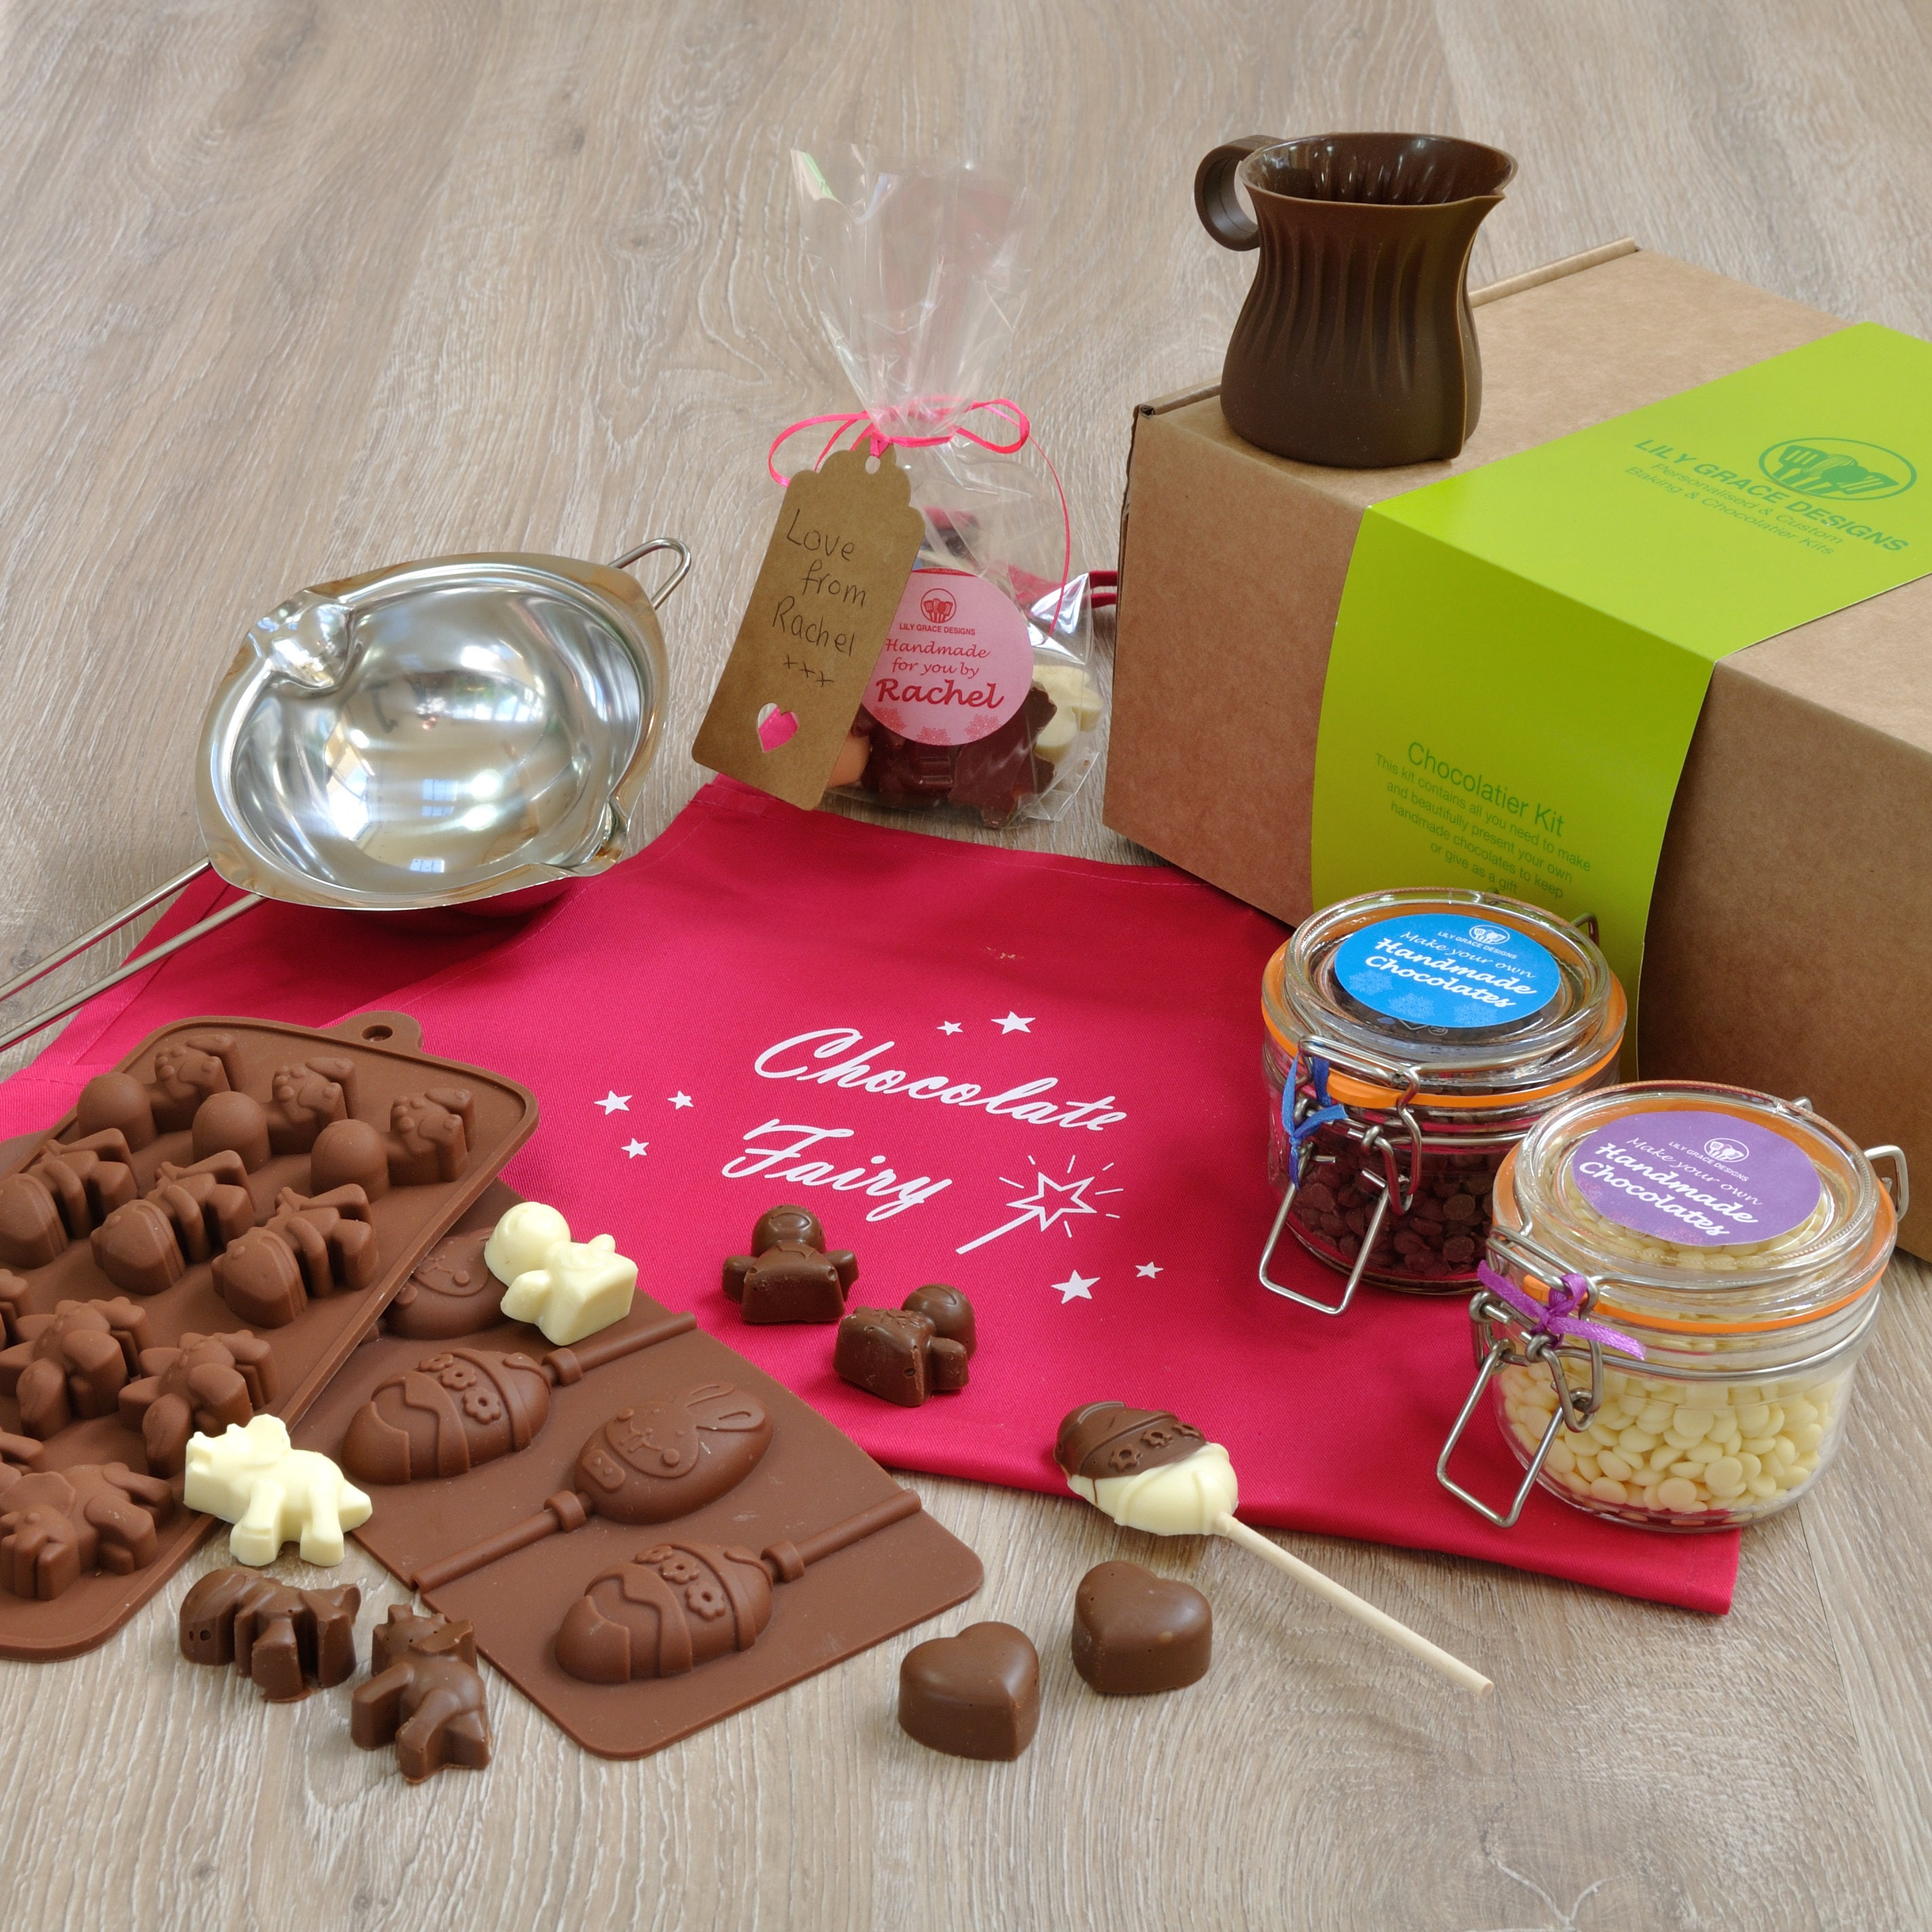 Original gift of chocolates with your own hands